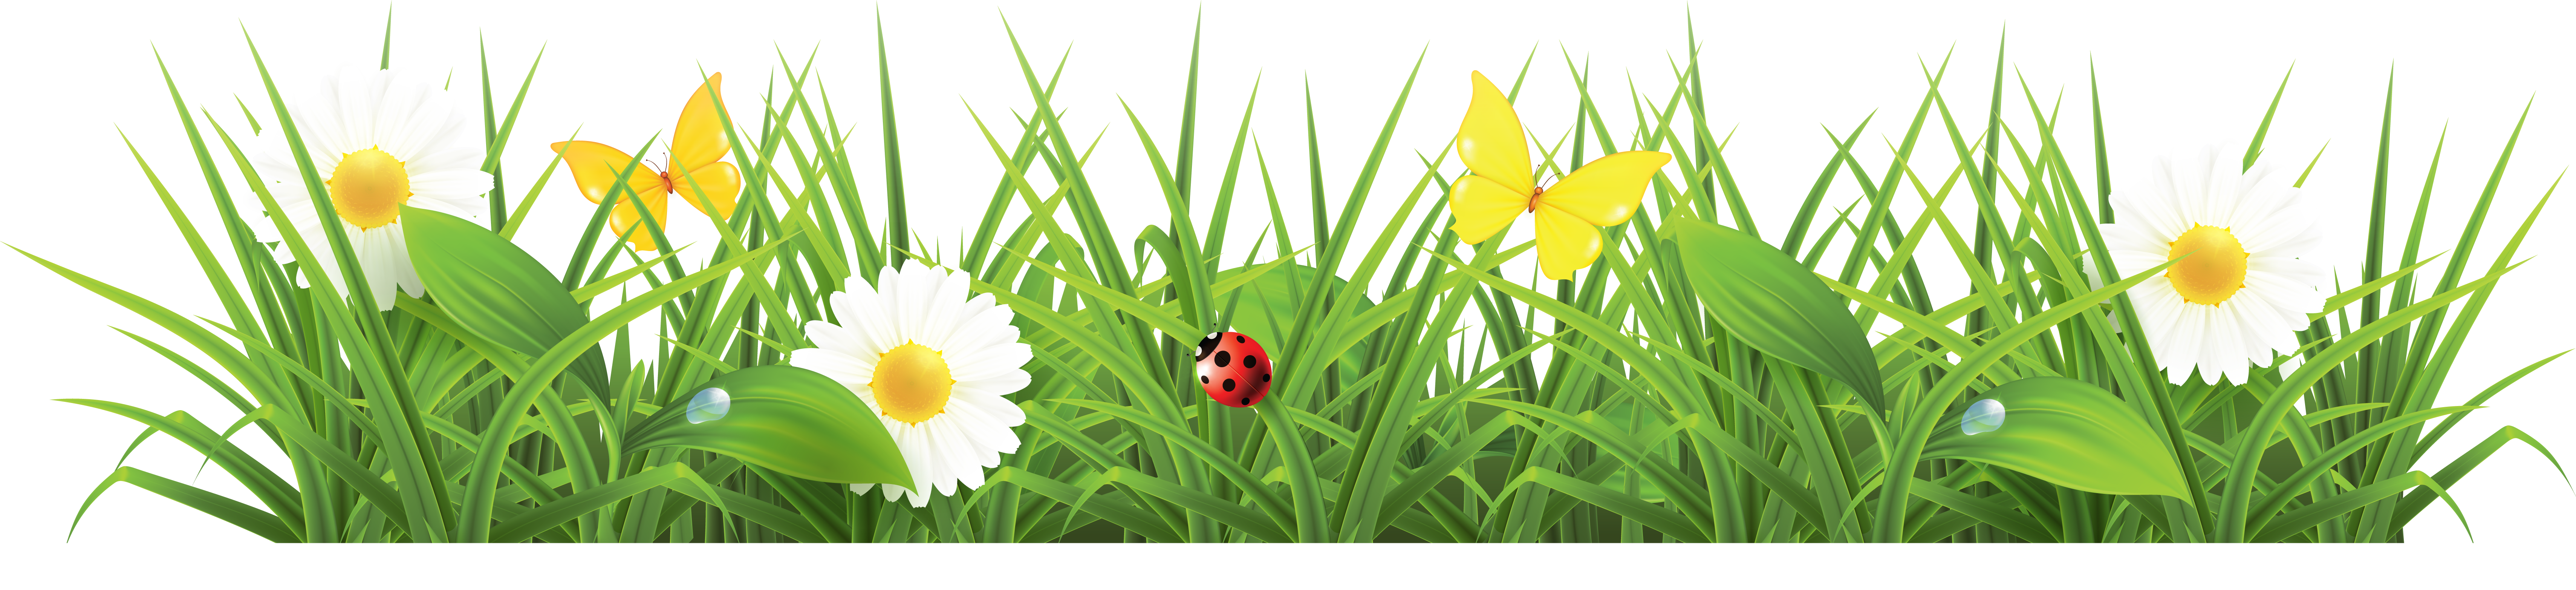 Ladybug clipart side view. Grass png images pictures